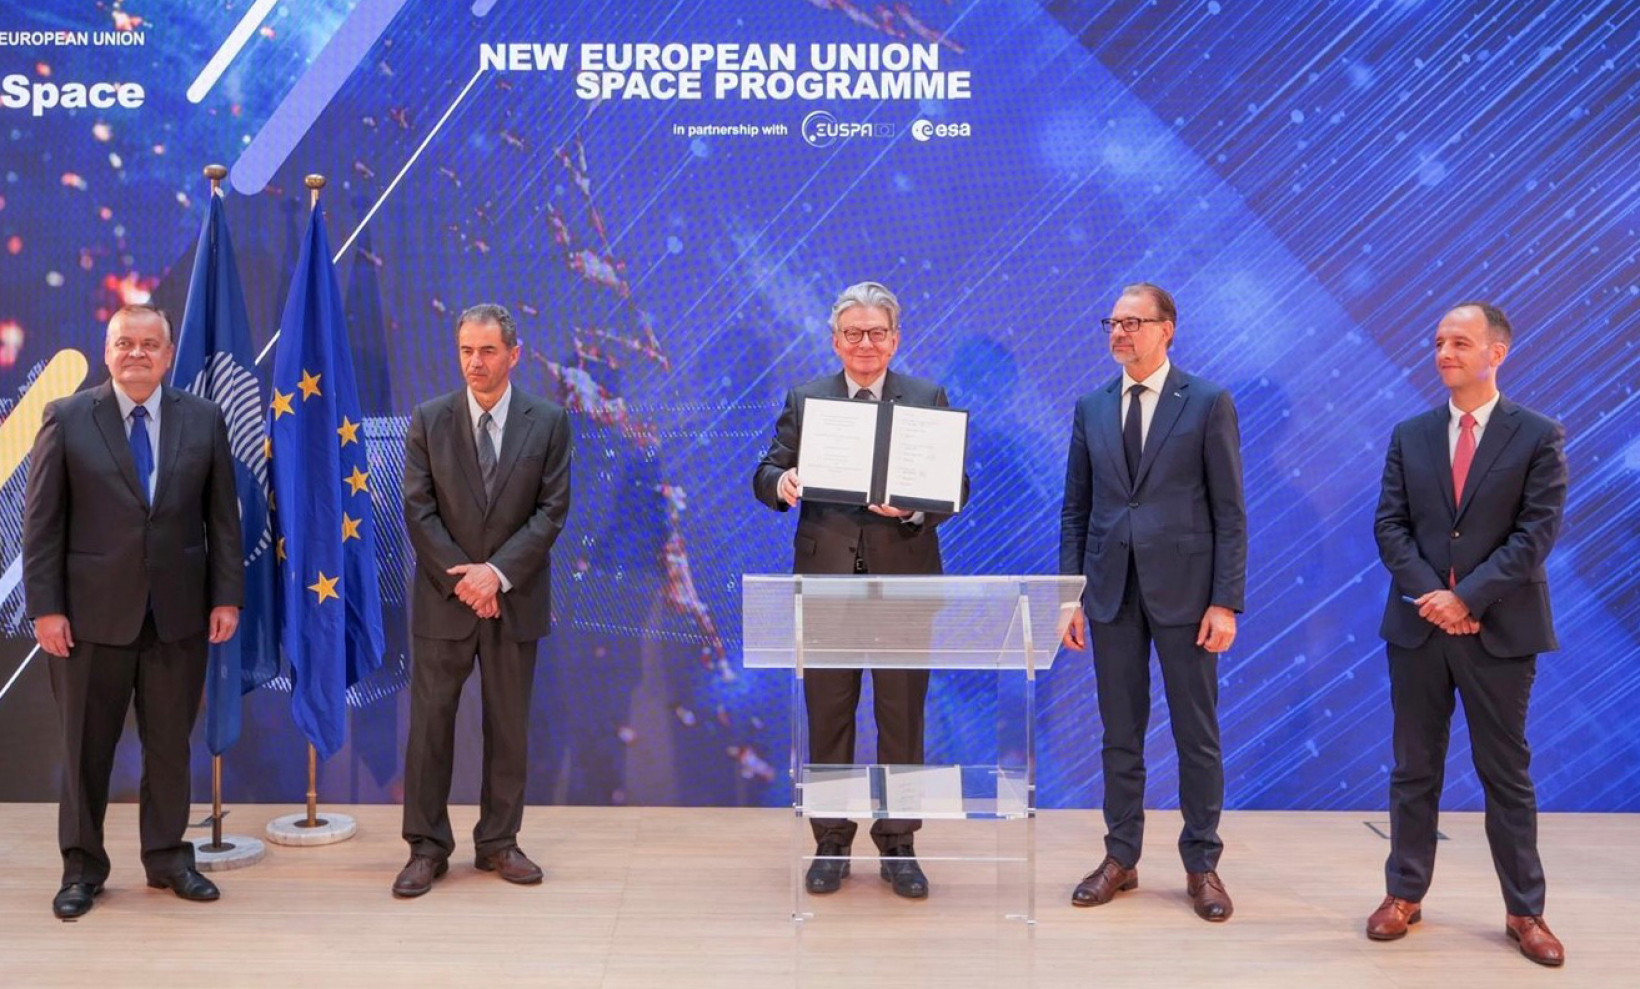 DG DEFIS Director General, Timo Pesonen, Minister for Science, Technology and Higher Education, Manuel Heitor, Commissioner for Internal Market, Thierry Breton, ESA Director General Josef Aschbacher and EUSPA Executive Director, Rodrigo da Costa.